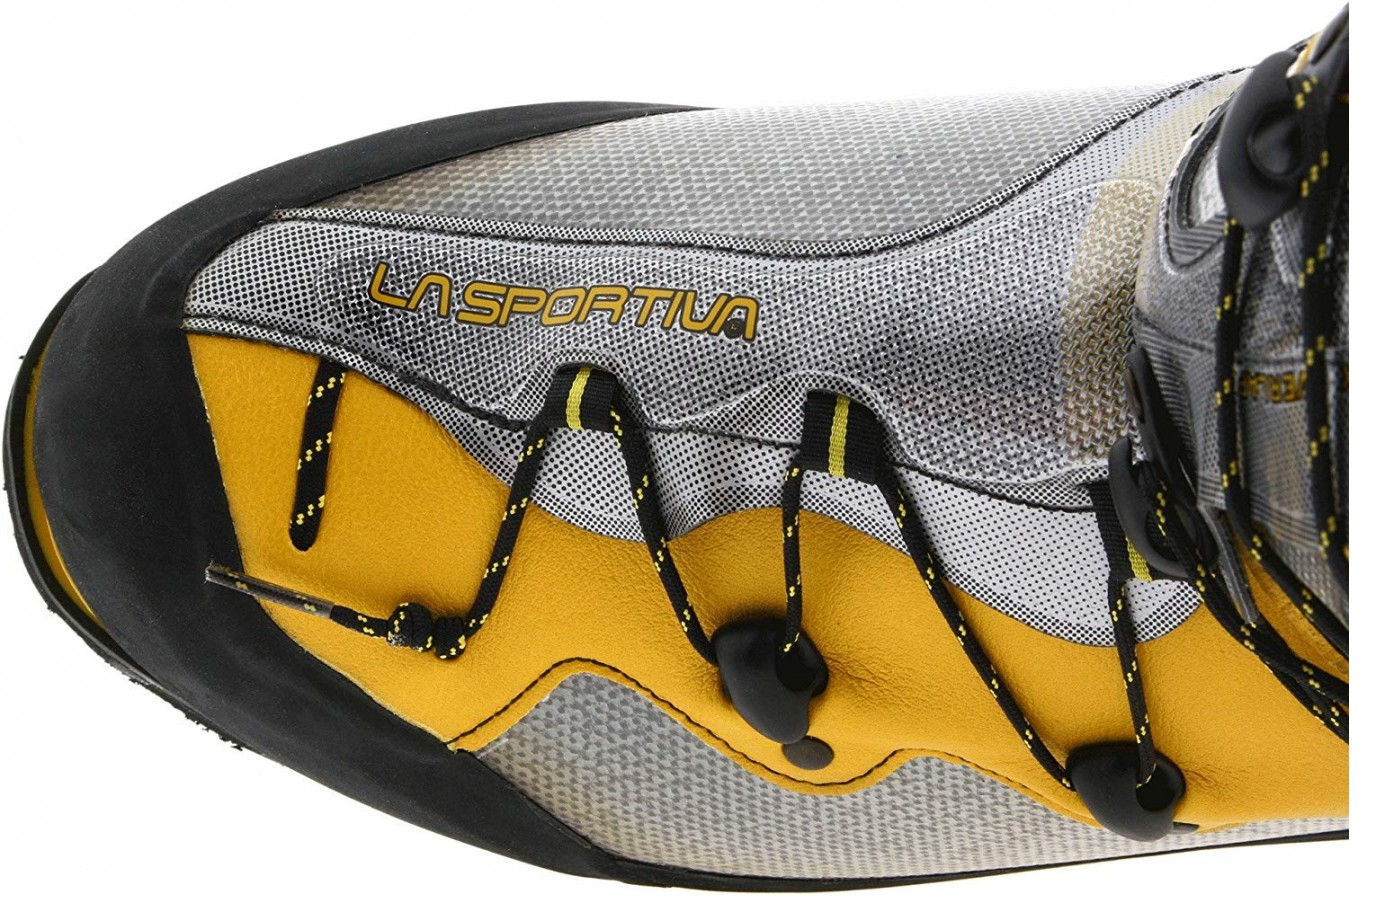 The single handed lacing system of the La Sportiva Spantik